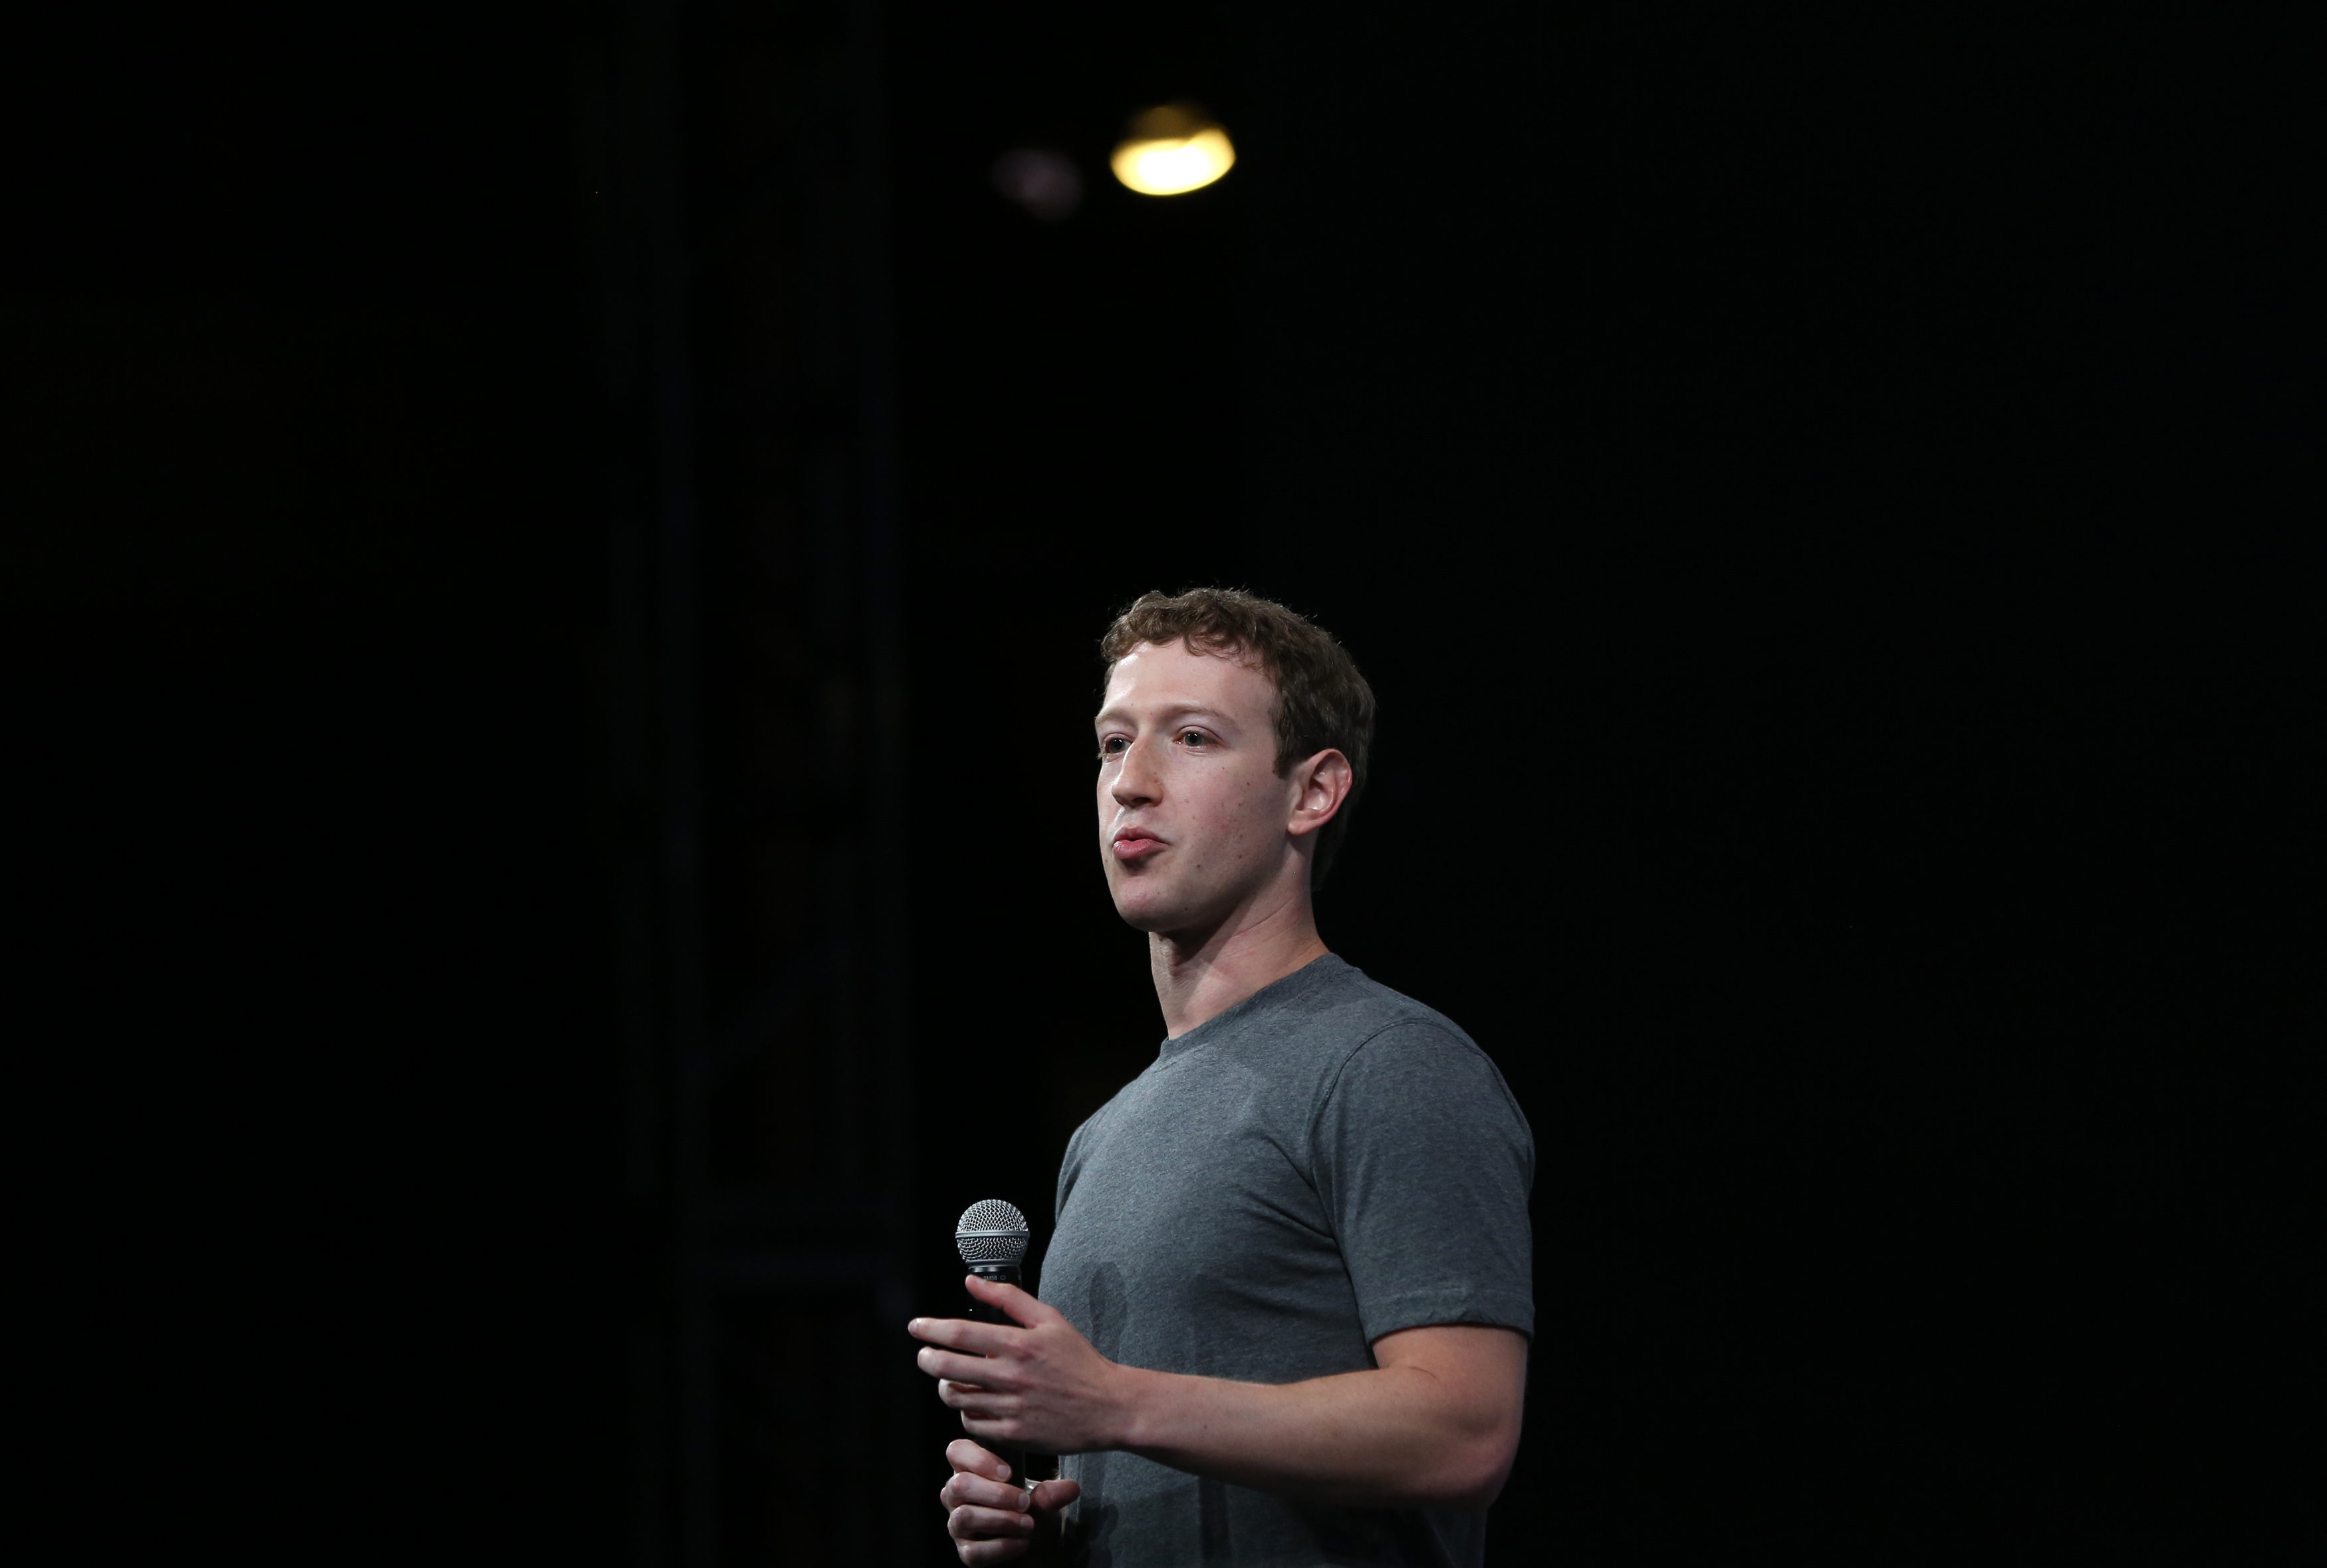 Facebook CEO Mark Zuckerberg gives his keynote address at Facebook's f8 developers conference in San Francisco